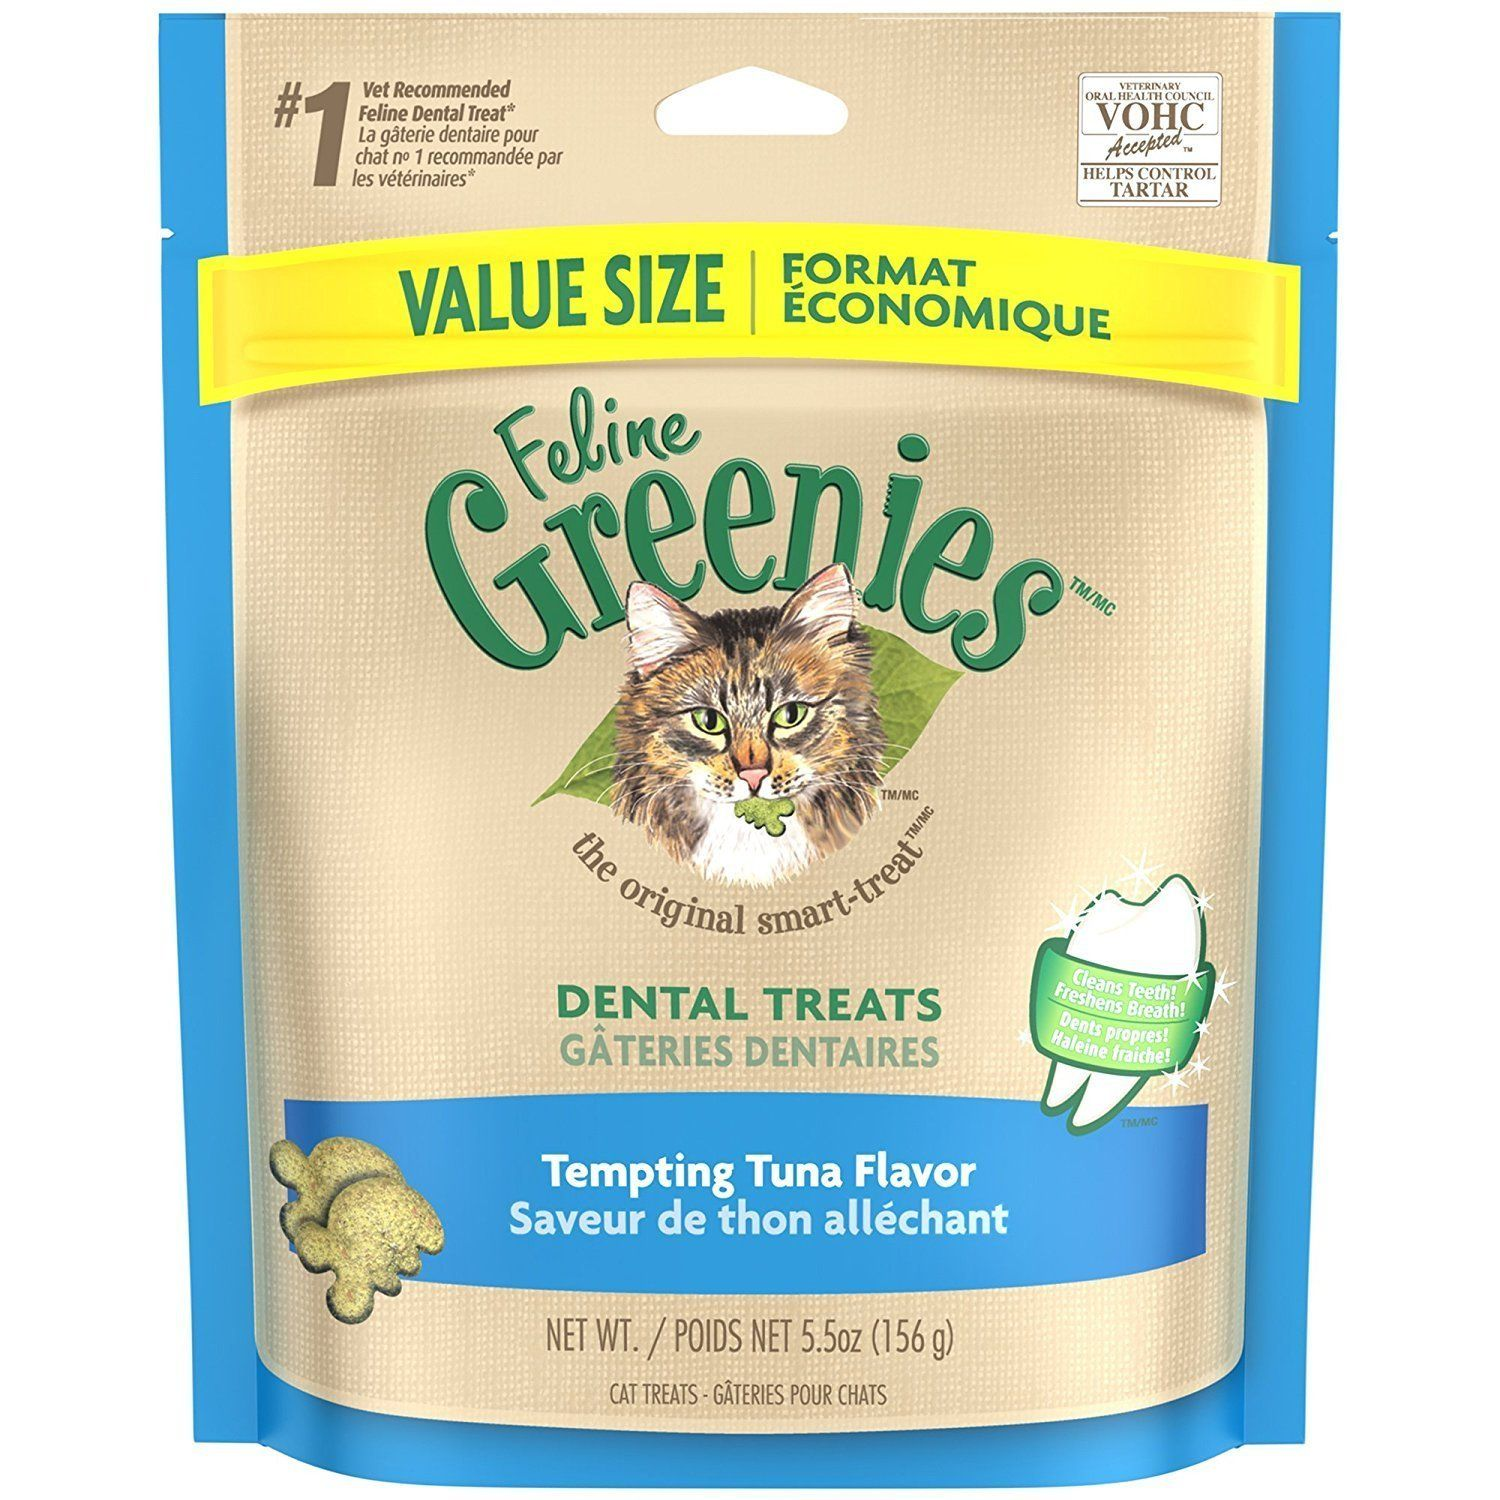 Dental Treats For Cats Tempting Tuna Flavor 5 5 Oz 6 Pack Want Additional Info Click On The Image This Is Dental Treats Cat Treats Natural Cat Treats